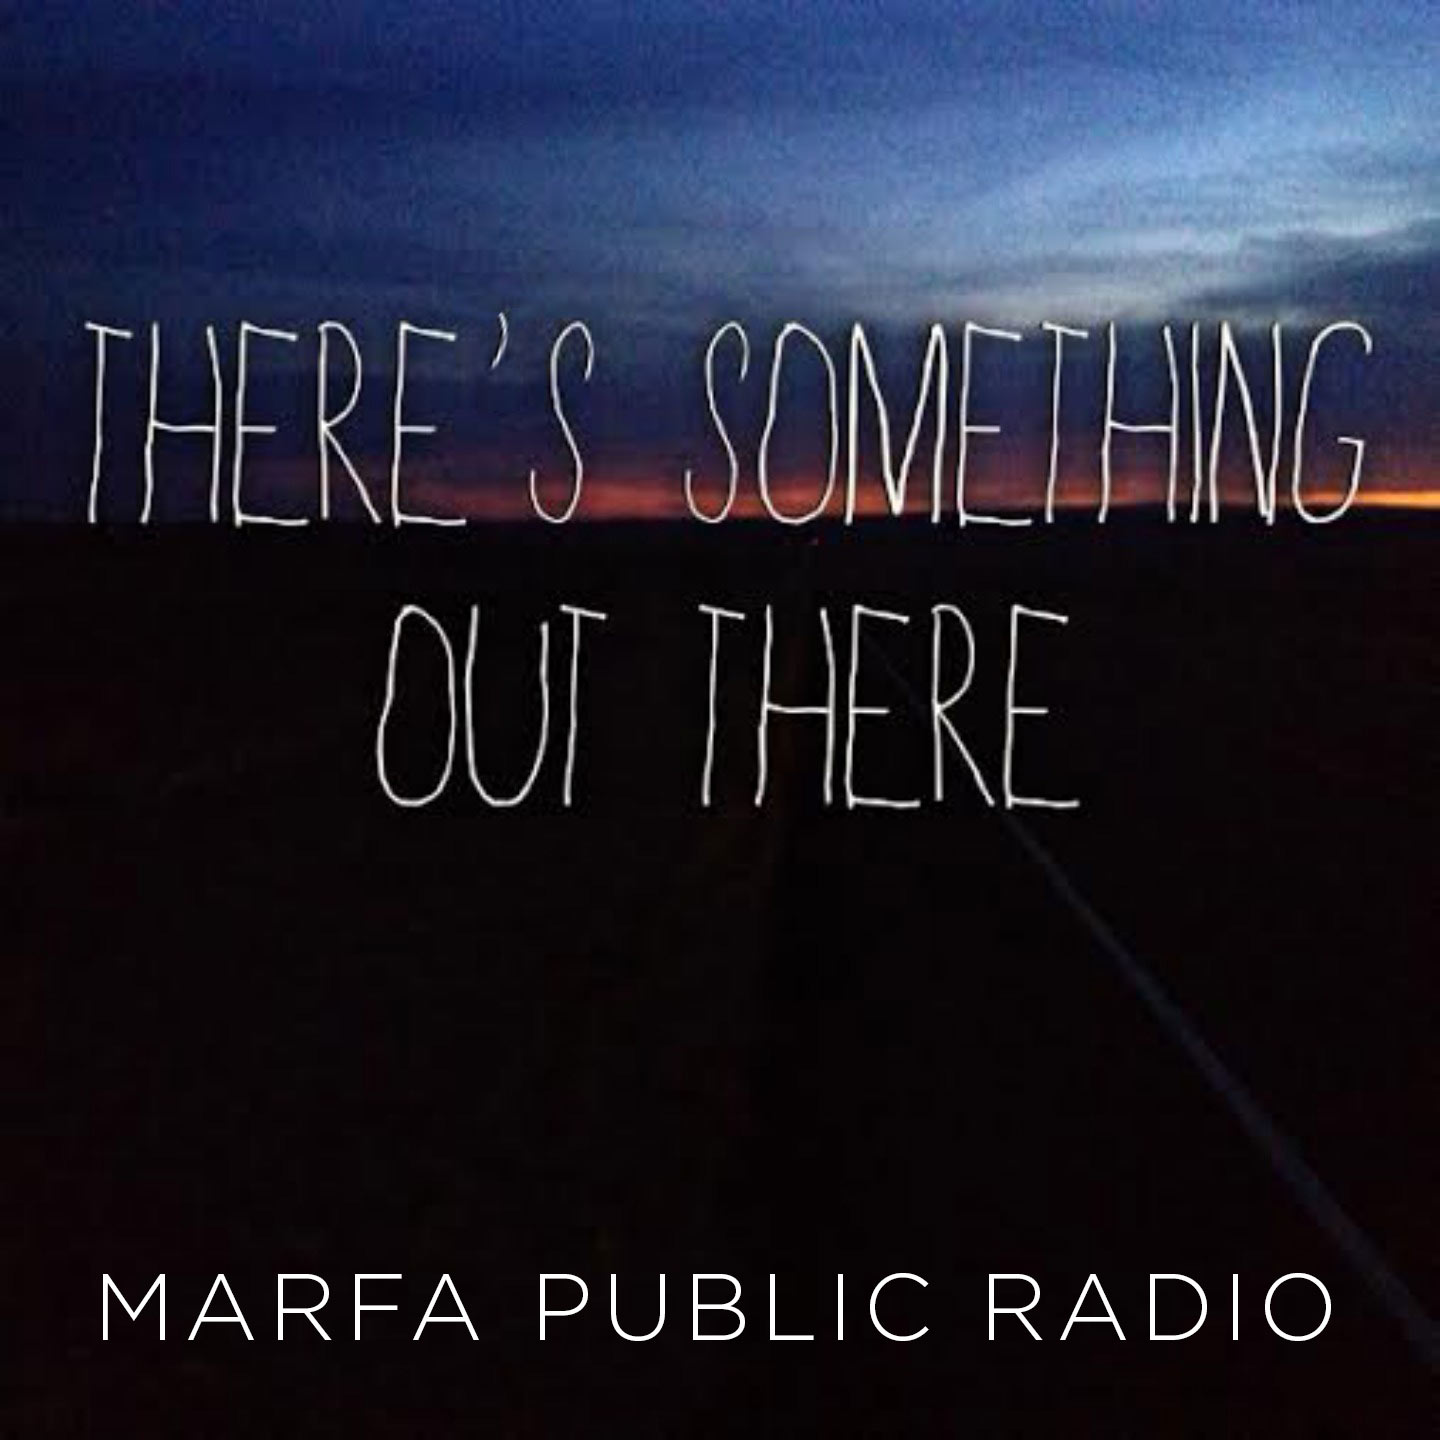 There's Something Out There from Marfa Public Radio